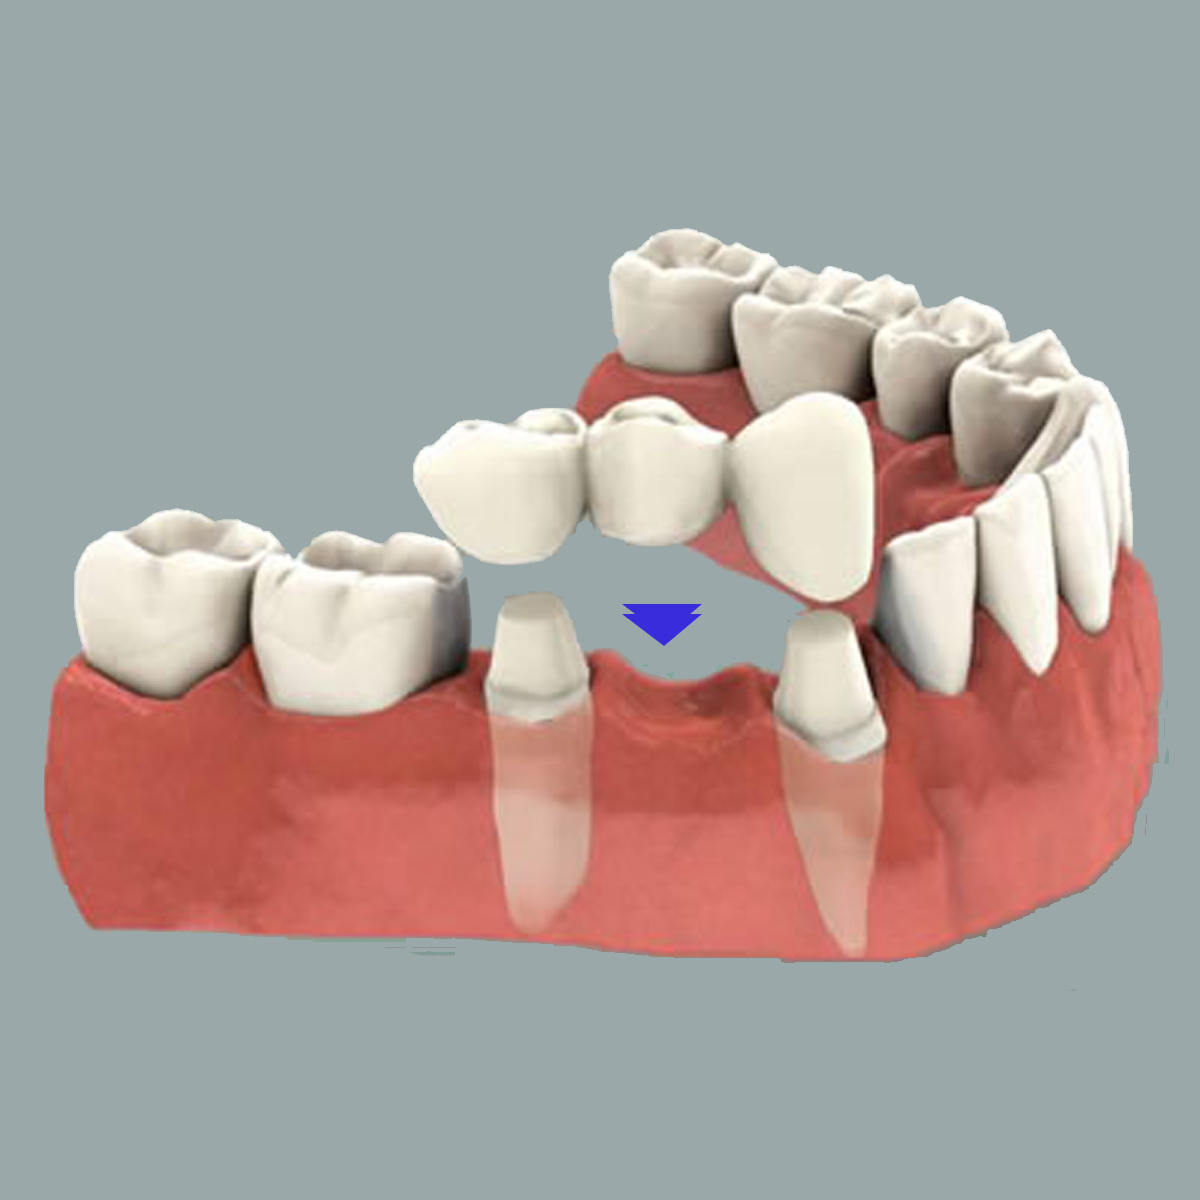 Pros and cons of dental prosthetics 87